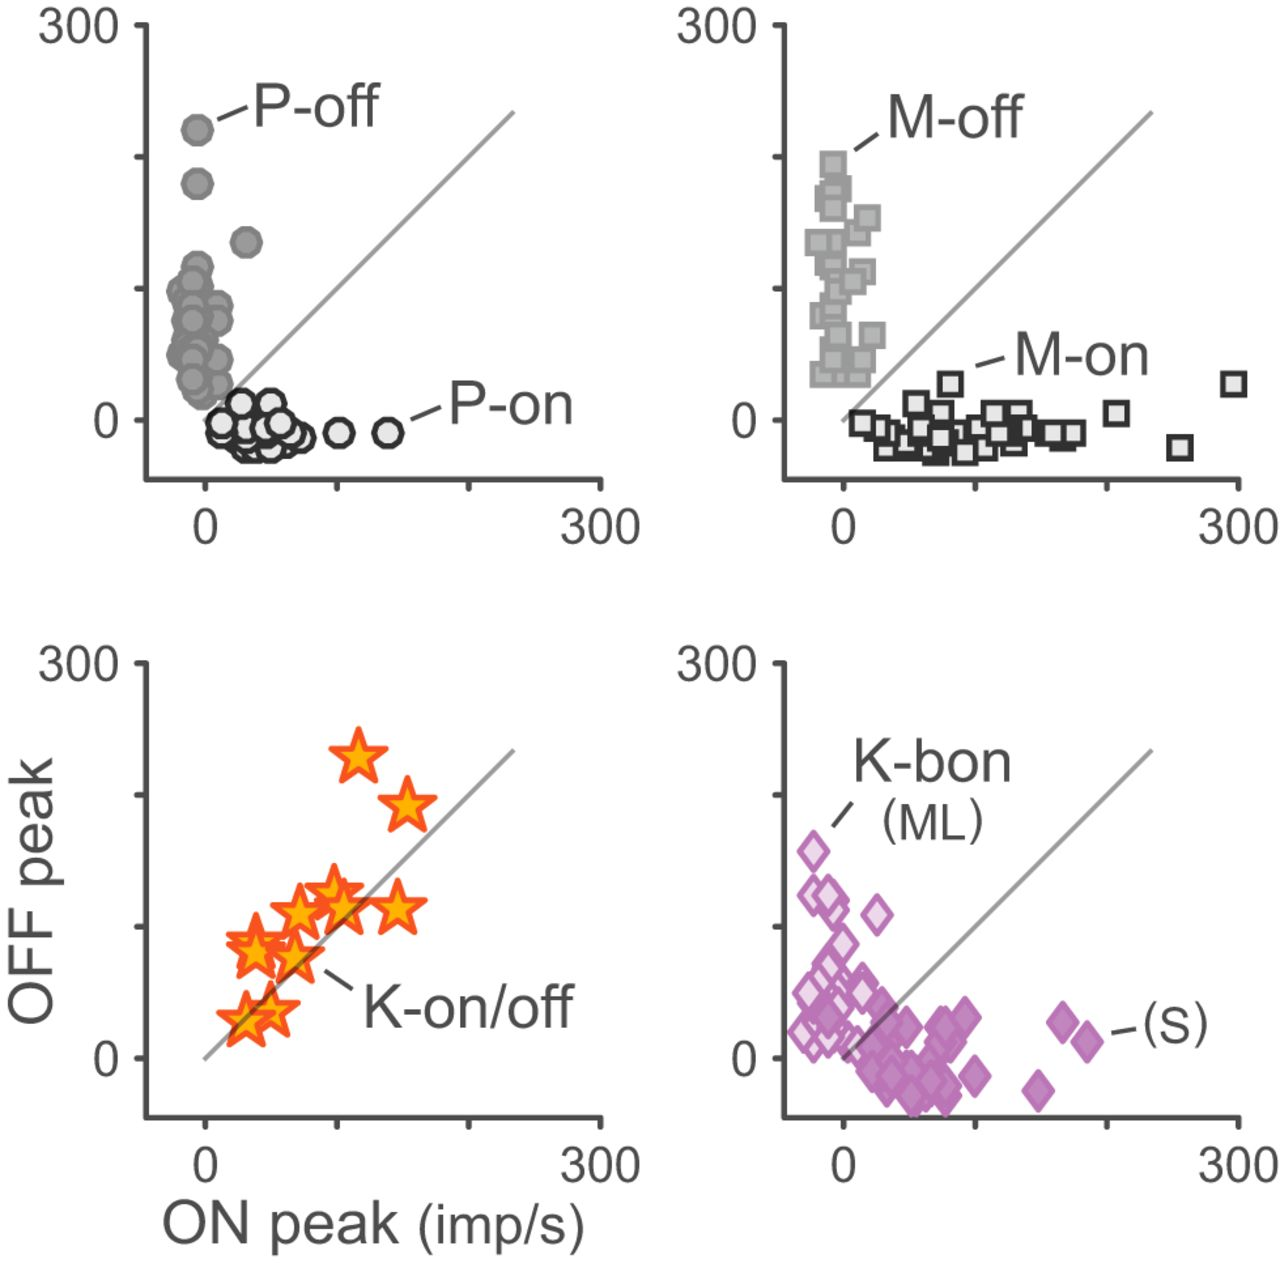 Receptive Field Properties of Koniocellular On/Off Neurons in the